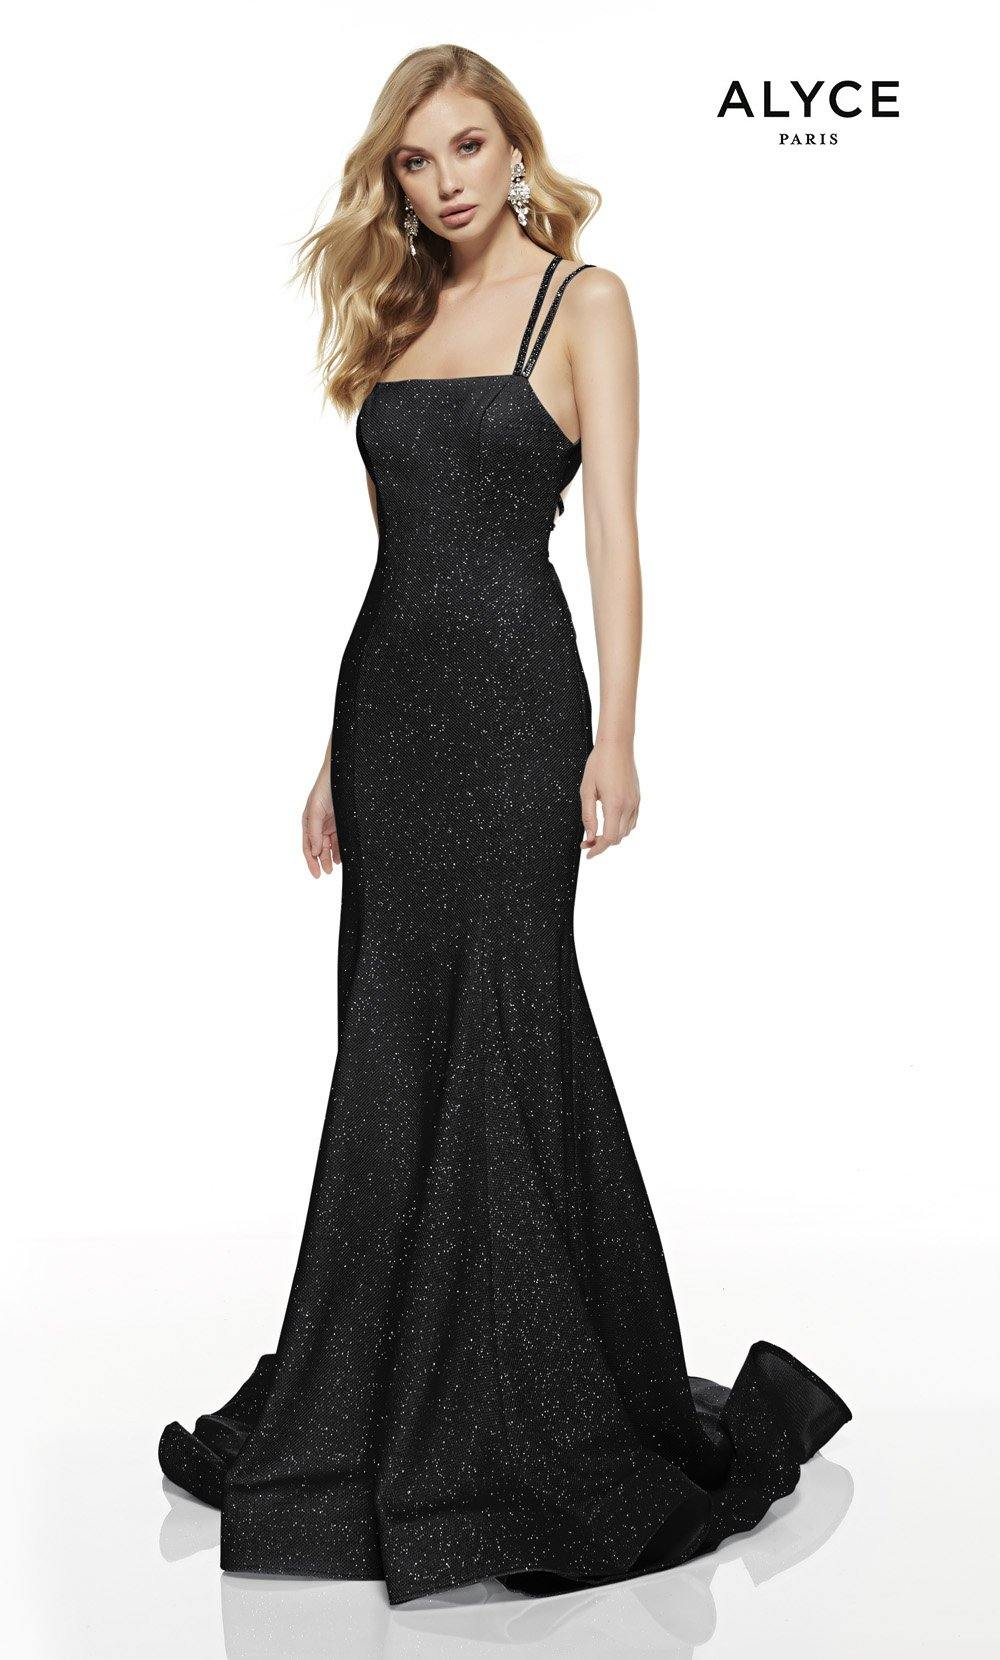 Black mermaid style prom dress with a squared neckline and a sweep train